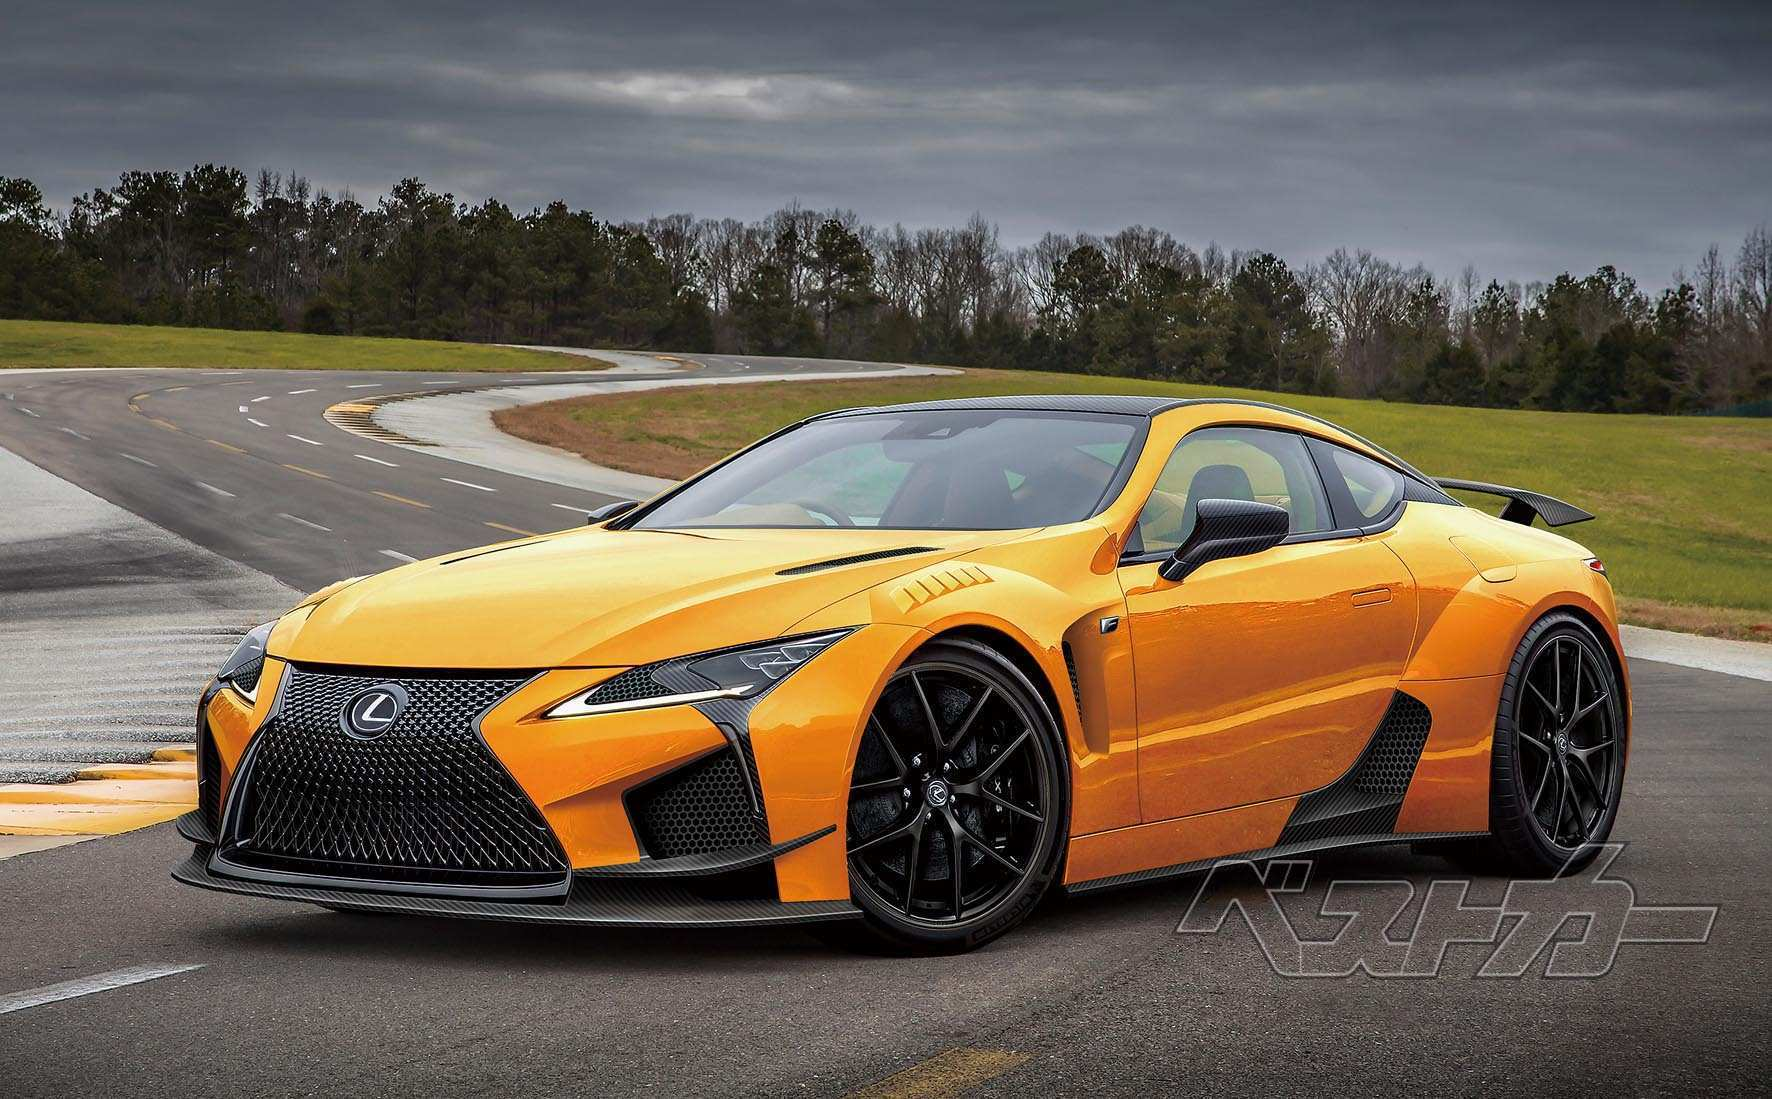 32 New Lc Lexus 2019 New Review for Lc Lexus 2019